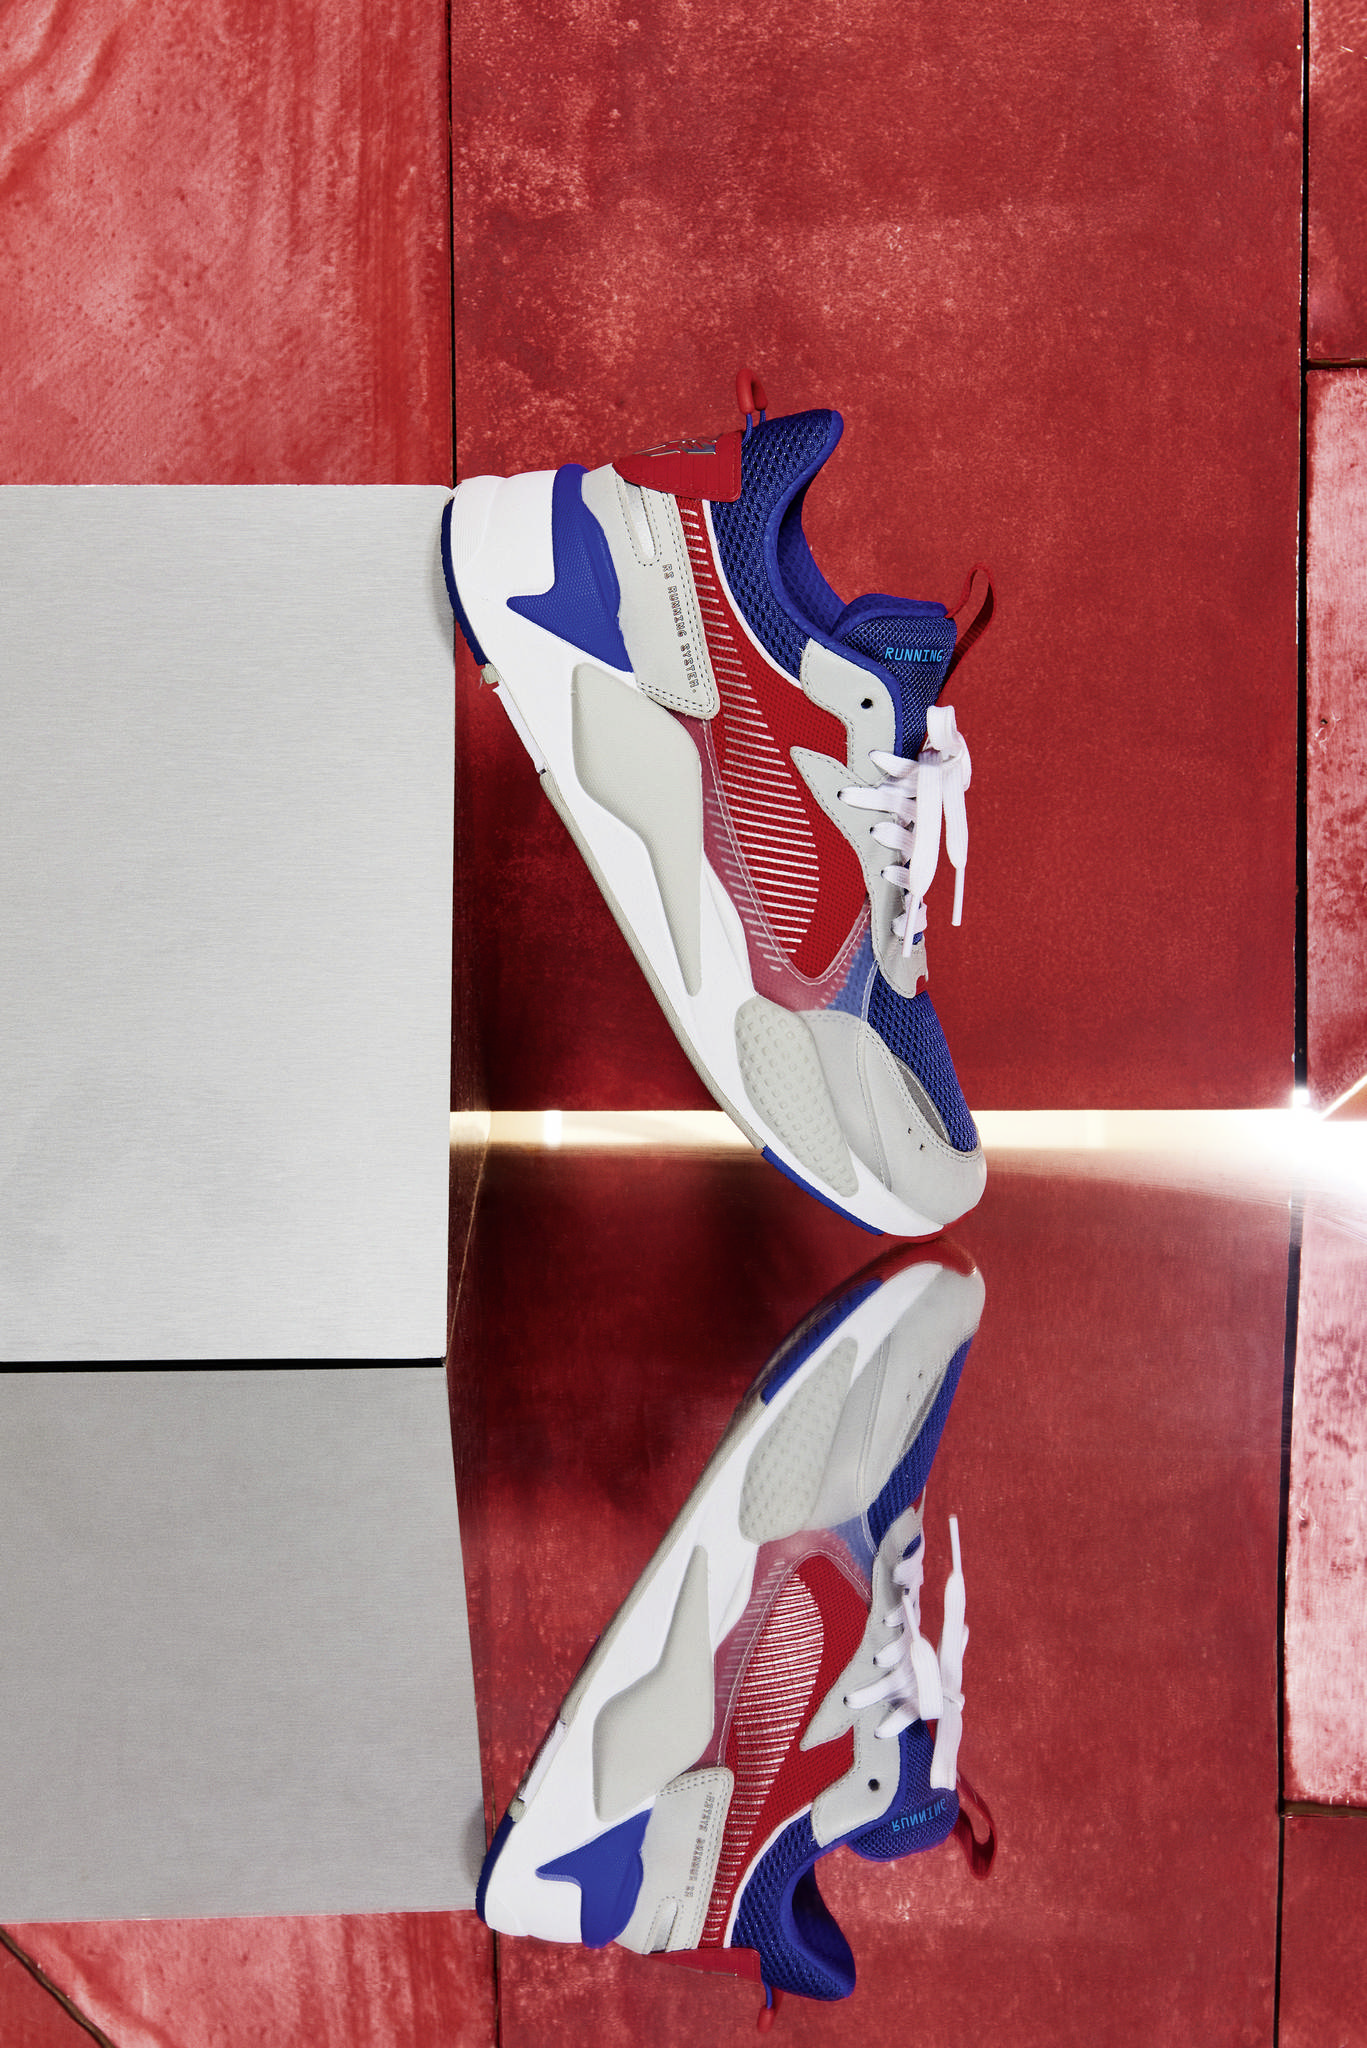 3f52cbd92ccea3 Puma RS-X Transformers Pack Fully Revealed! - Transformers News ...